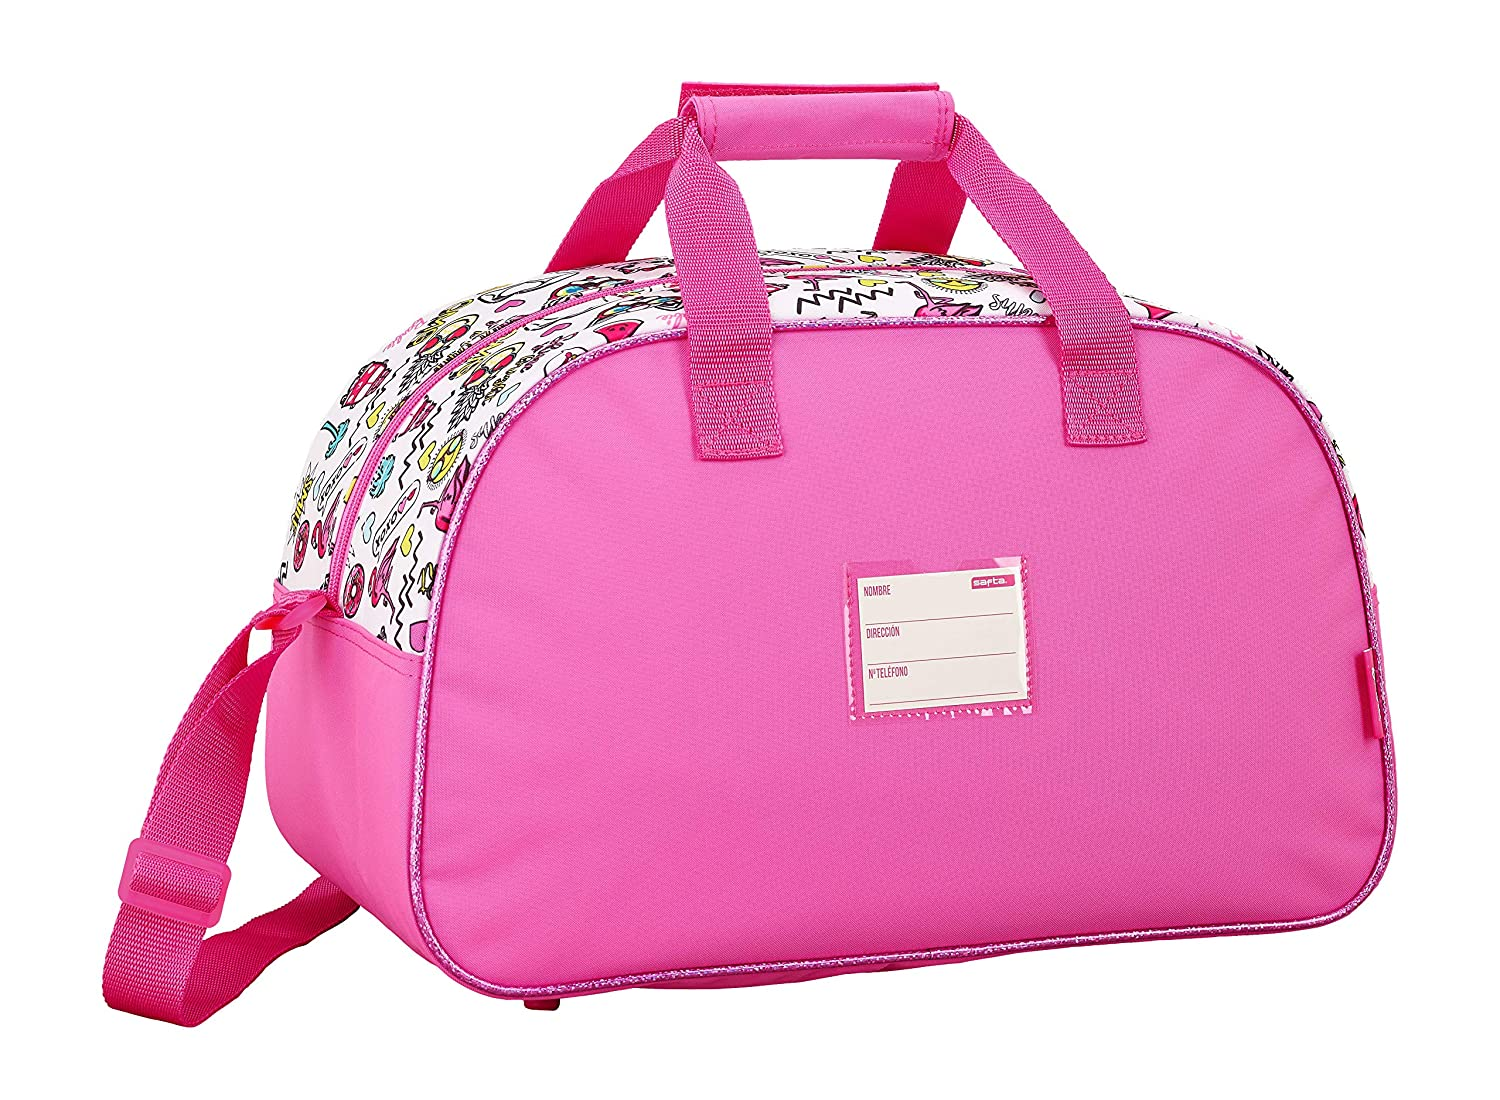 Barbie Celebration Oficial Bolsa De Deporte 400x230x240mm